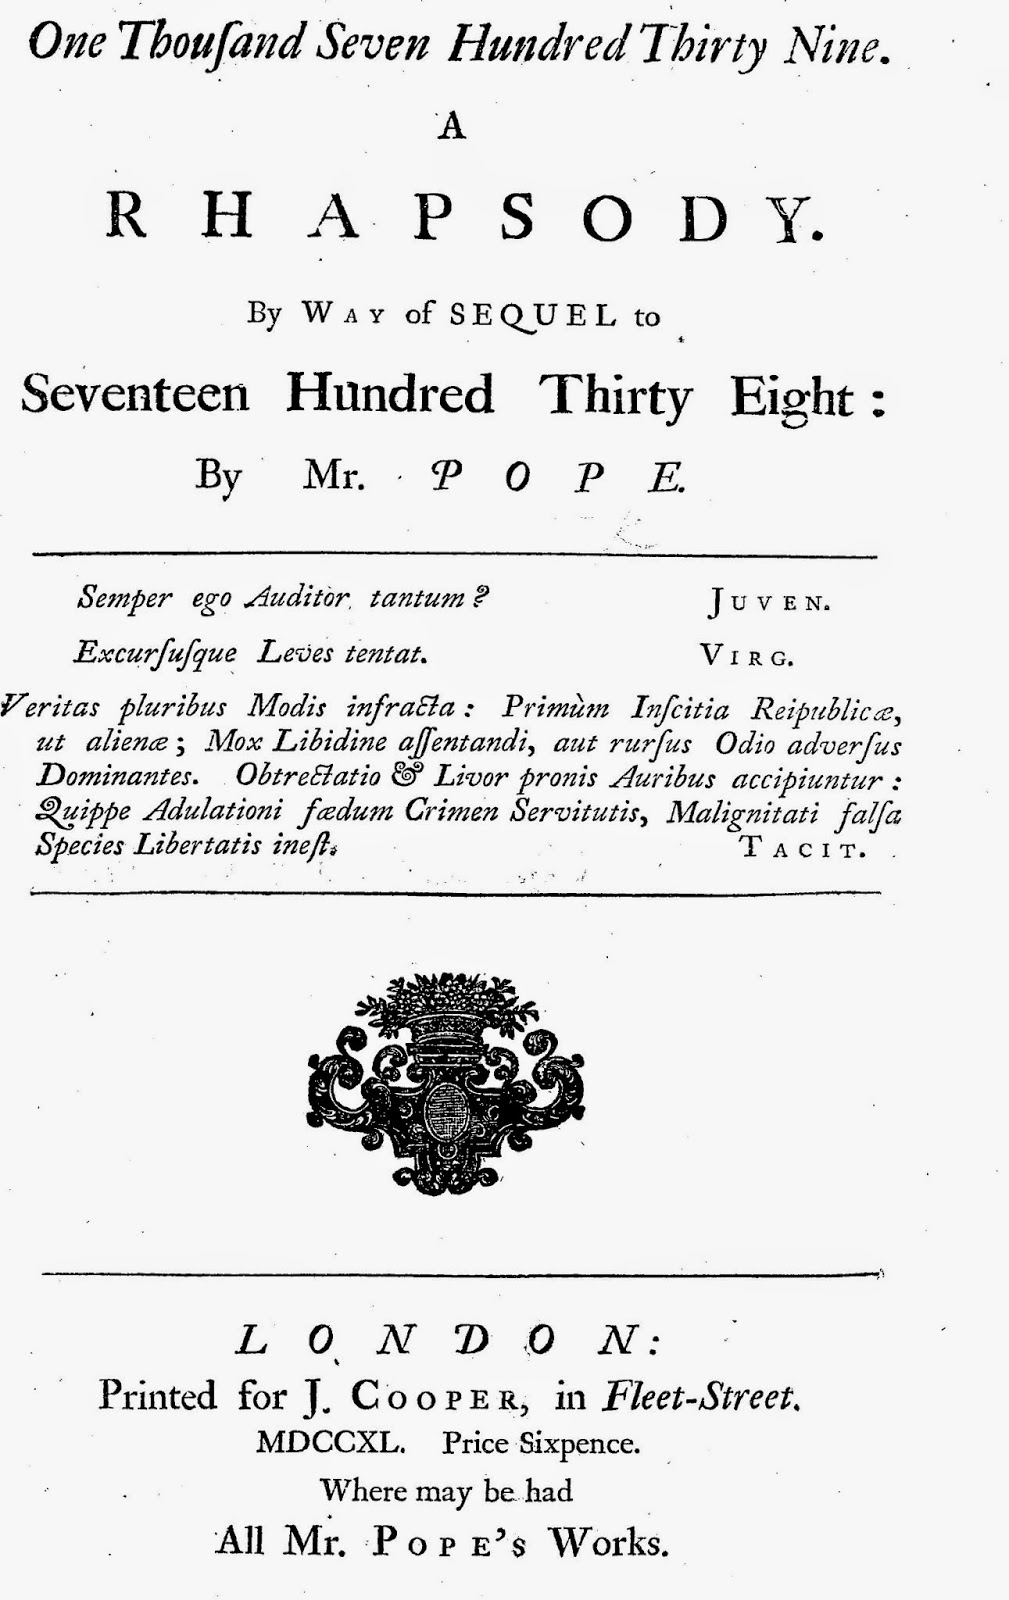 alexander pope essay on man translation An essay on man has 559 ratings and 35 reviews steve said: portrait of alexander pope (1688 – 1744) by jonathan richardson, ca 1736 know then thysel.